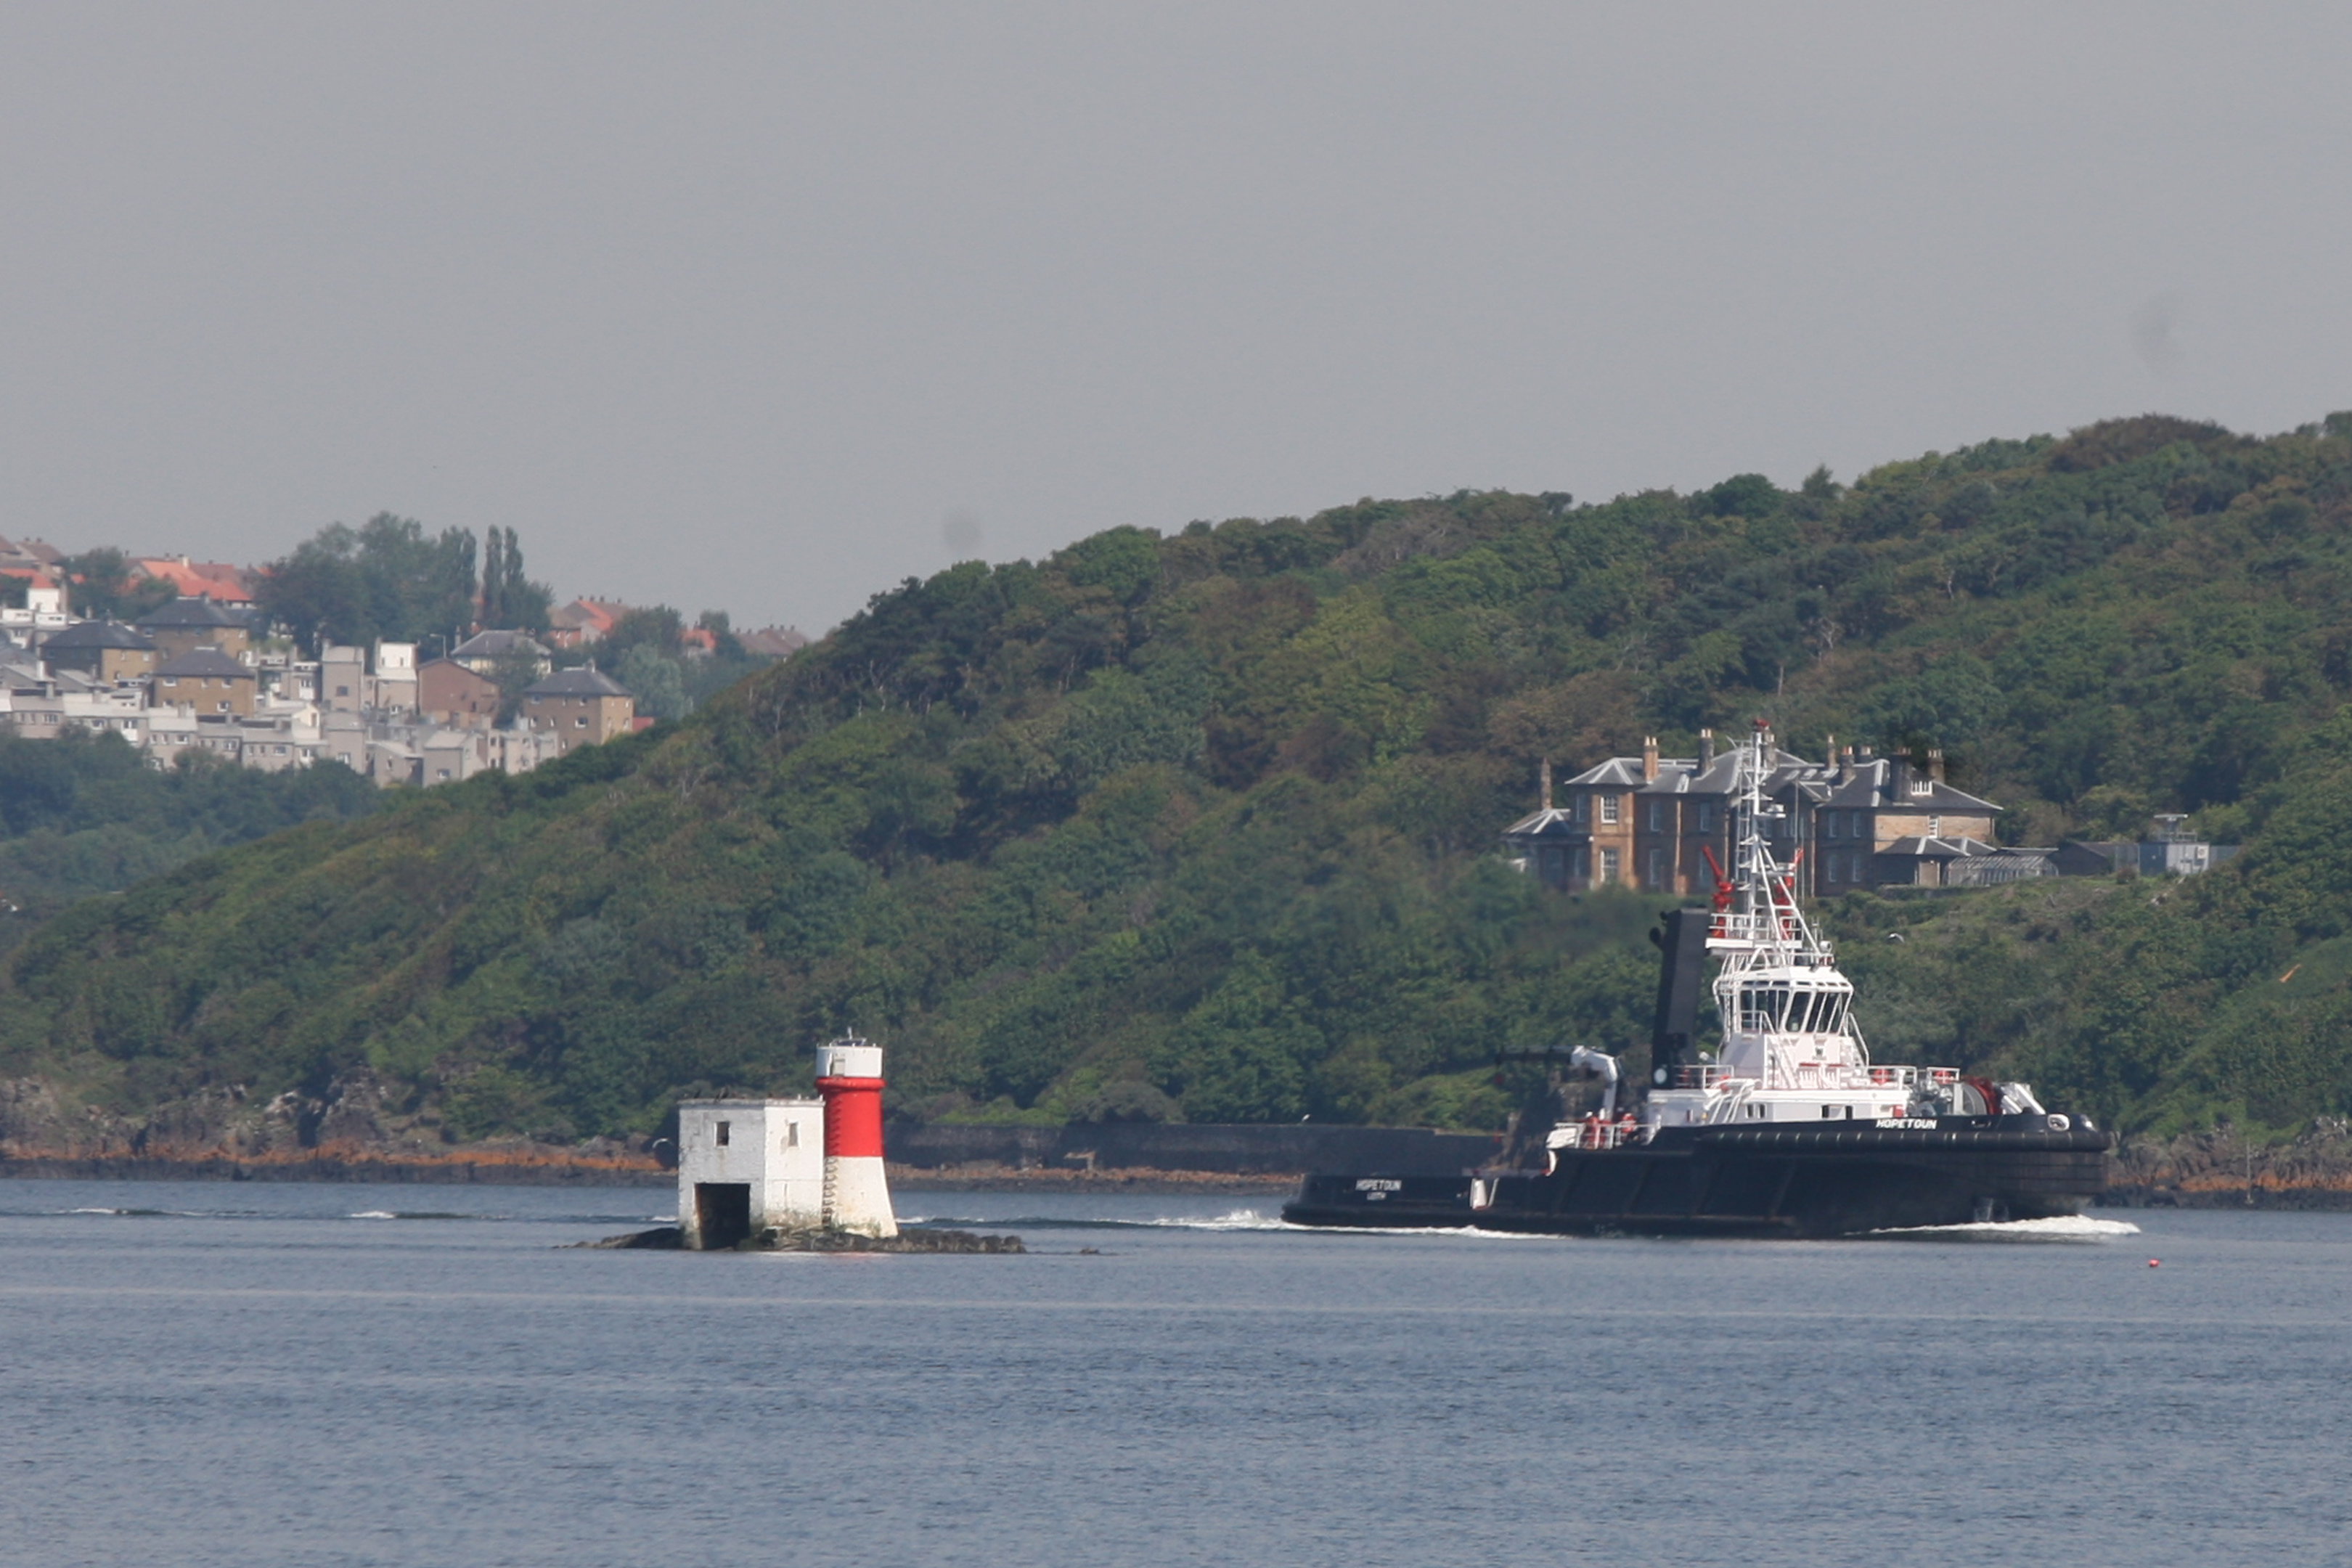 Beamer Lighthouse off Port Edgar, South Queensferry, was moved to make way for the Forth crossing.